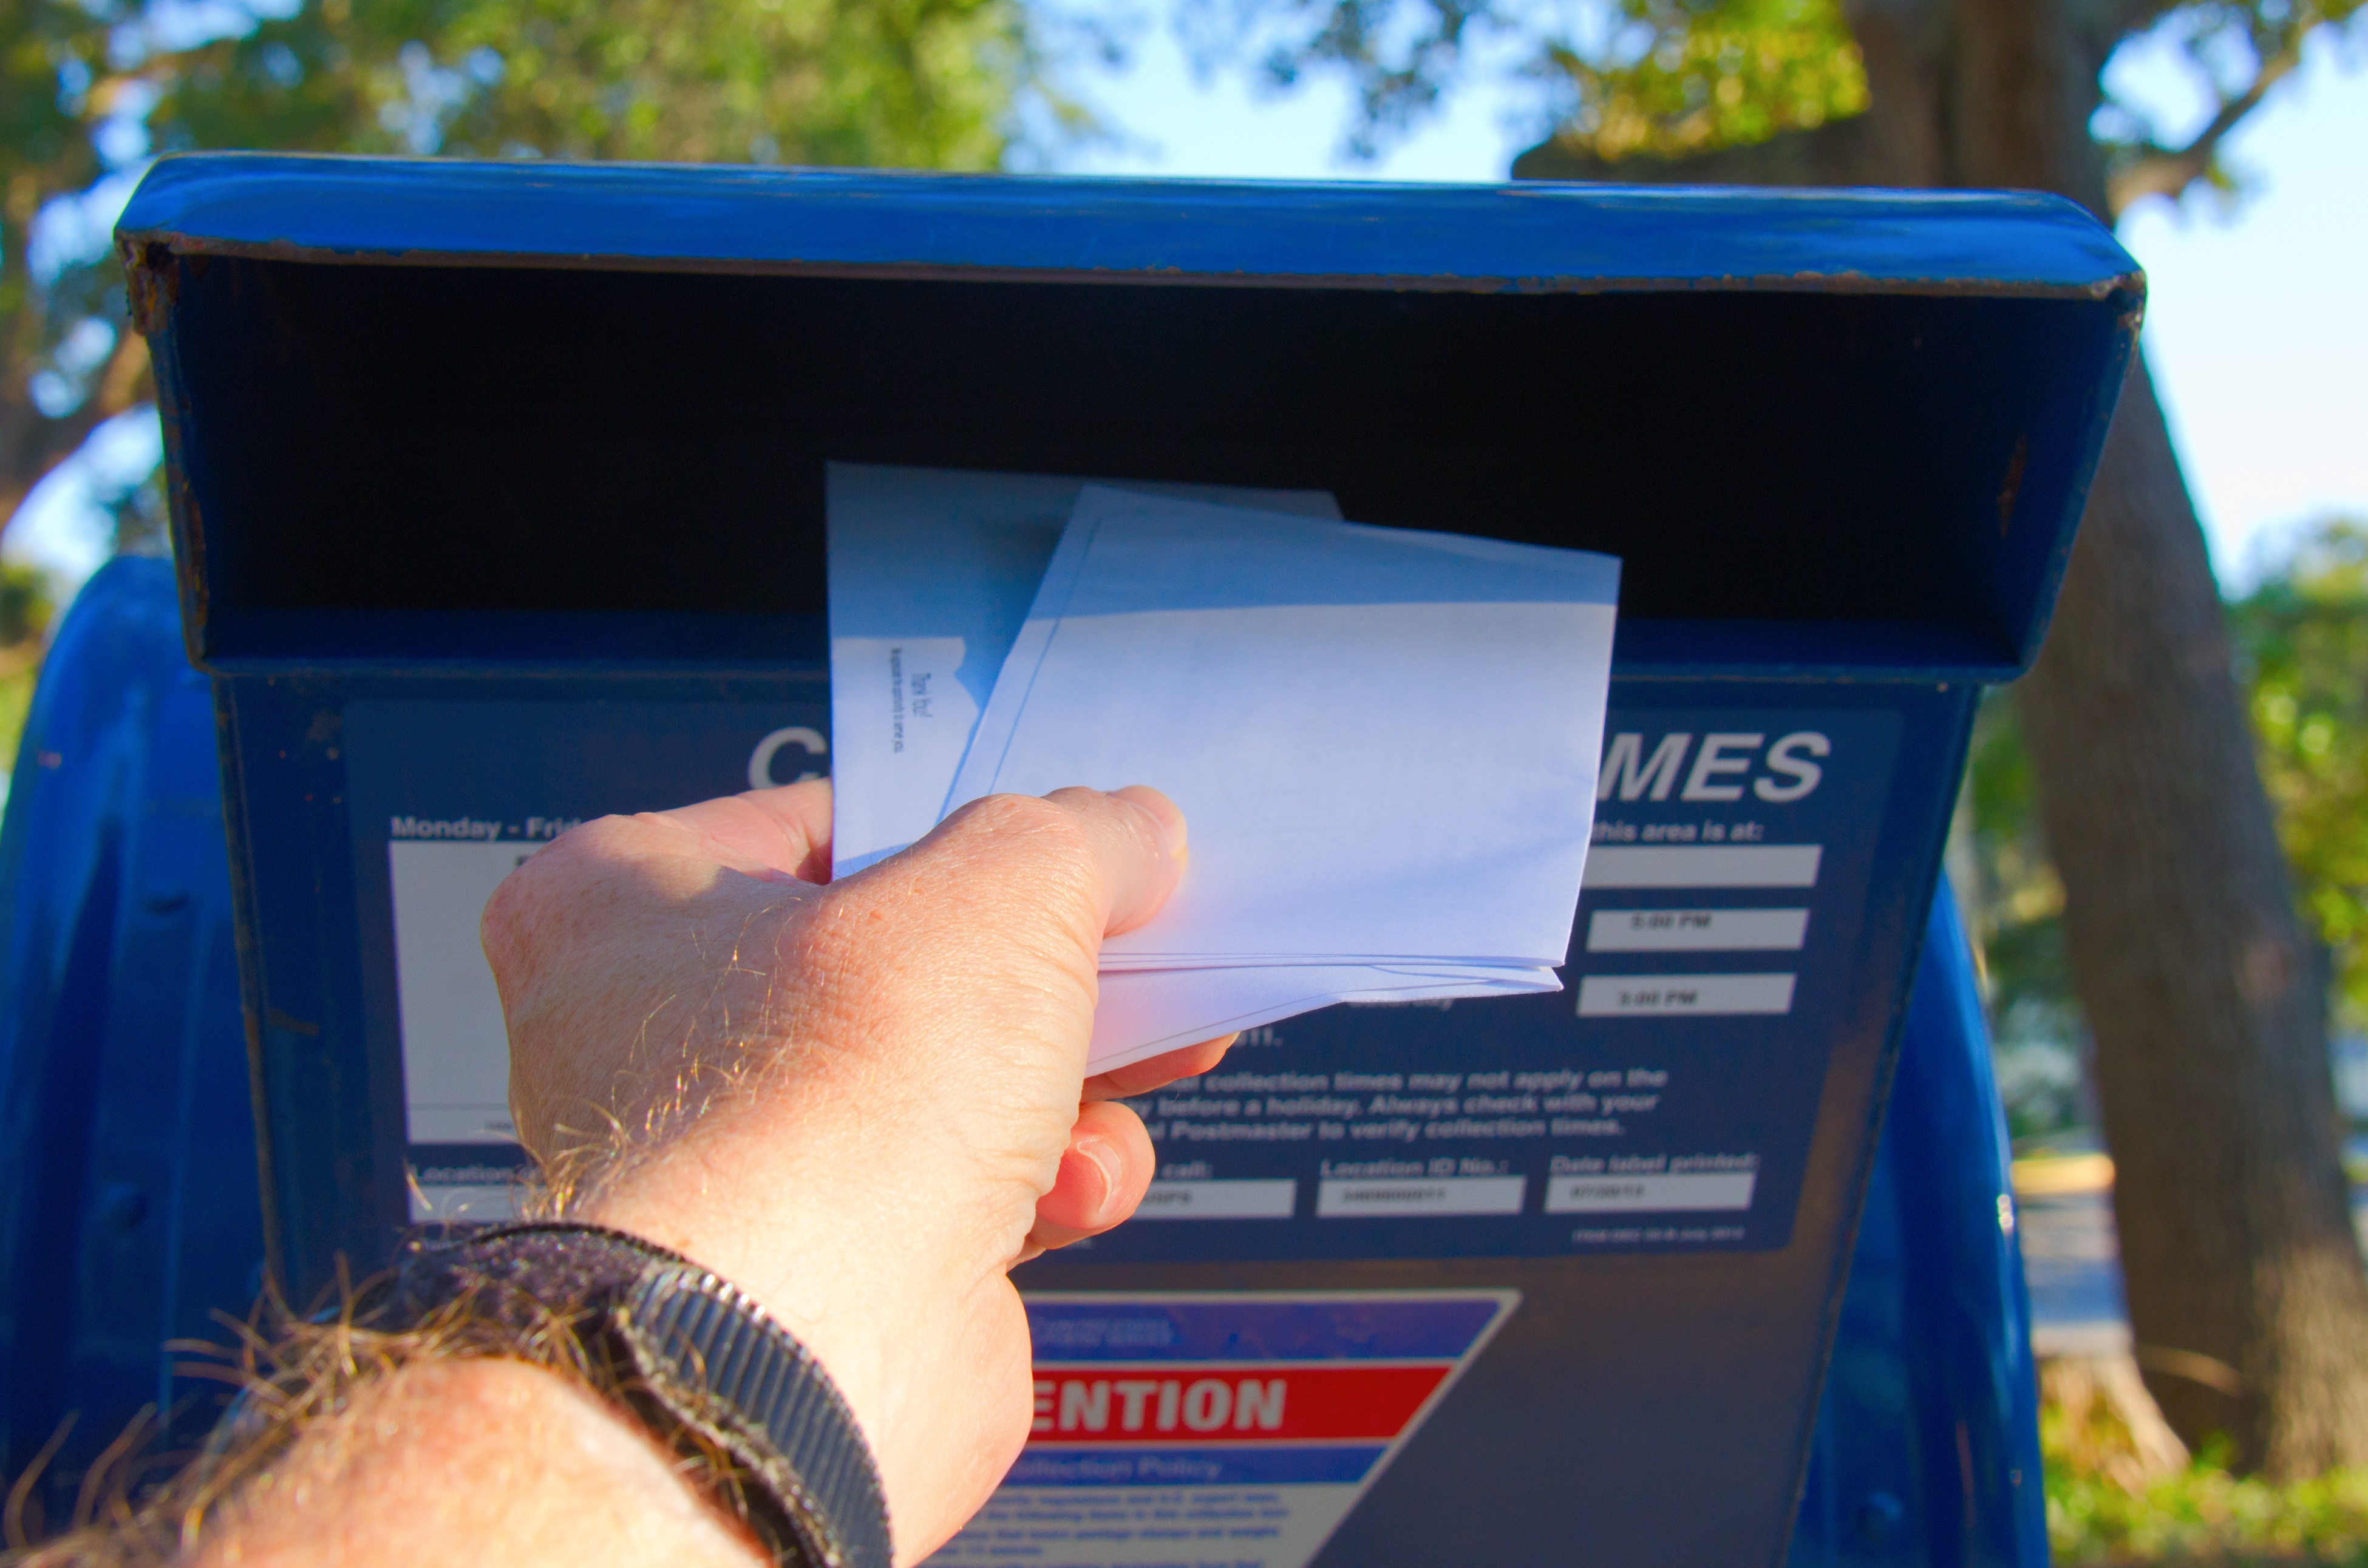 Mail Being Placed in a Post Office Box